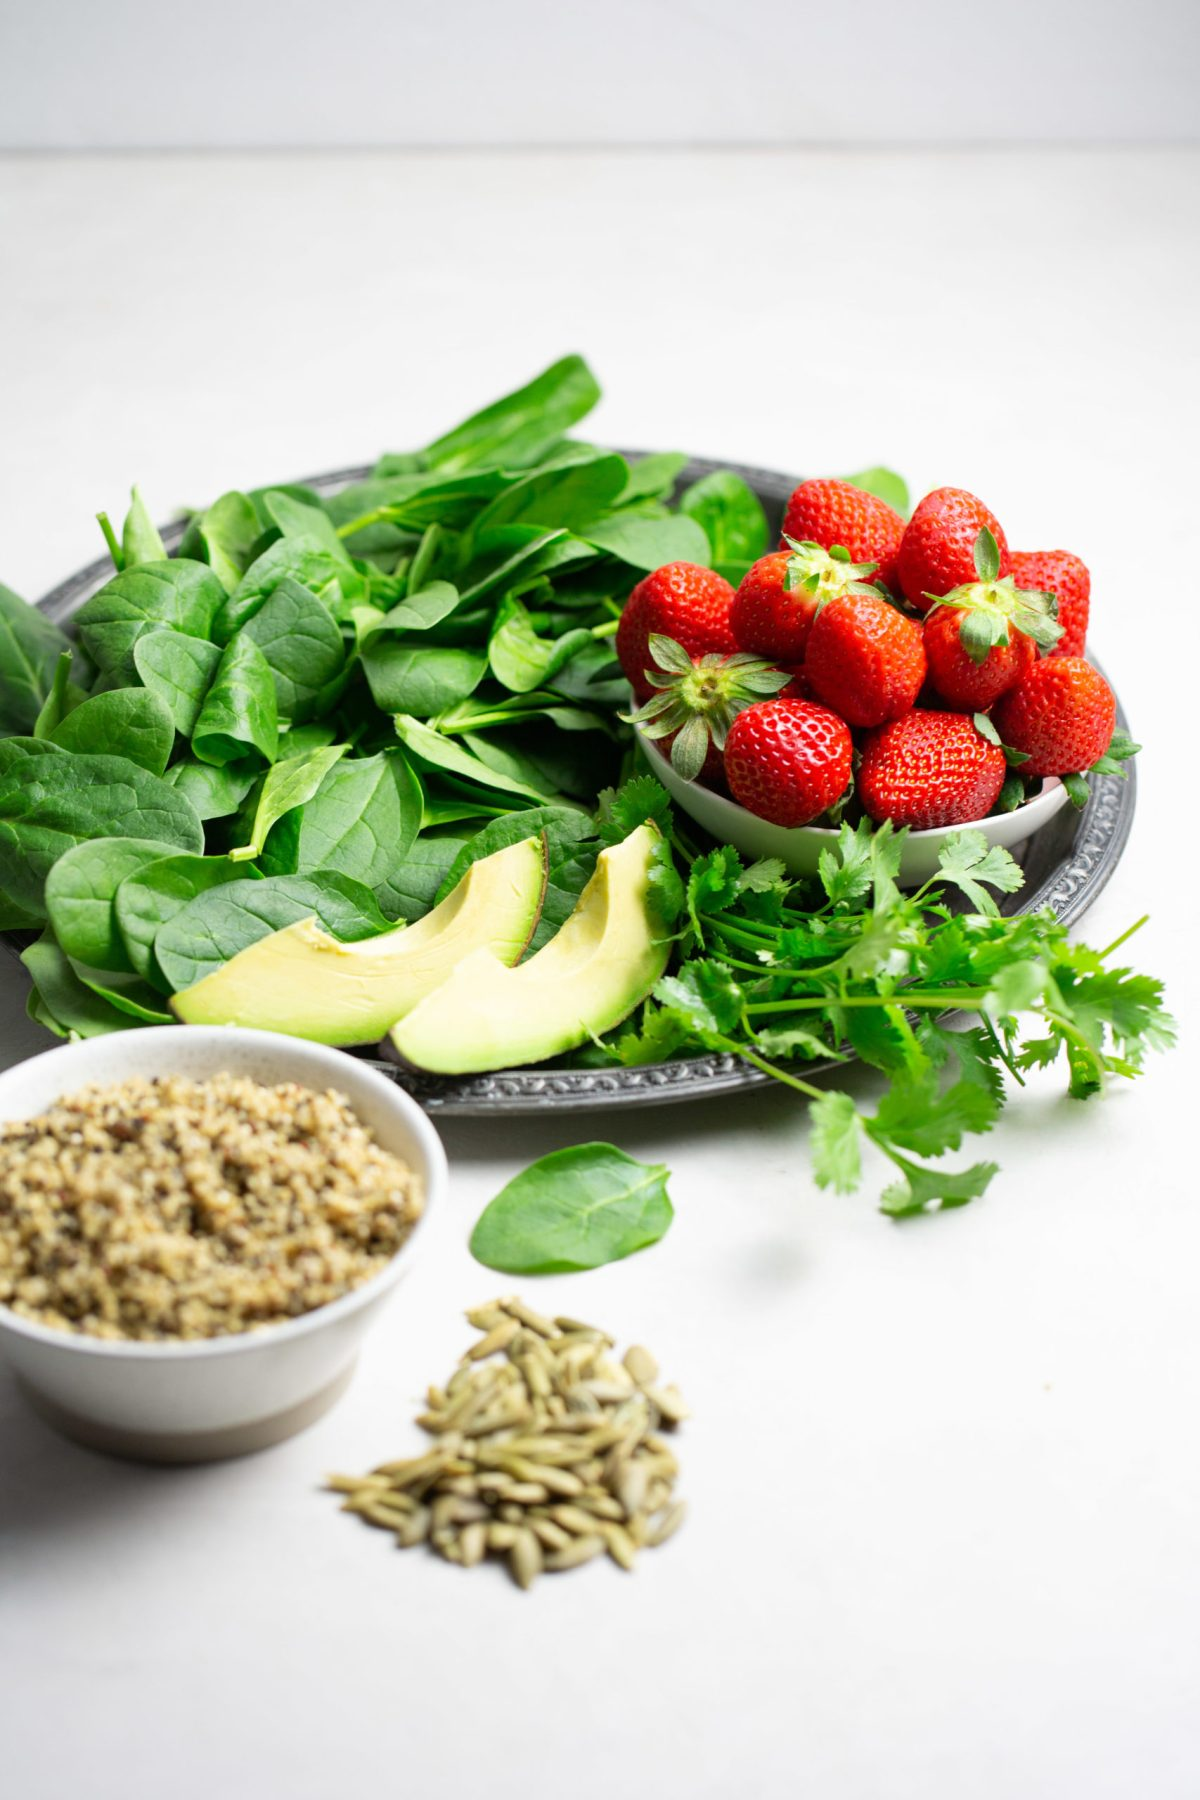 SPINACH STRAWBERRY SALAD WITH A CHIPOTLE-LIME DRESSING